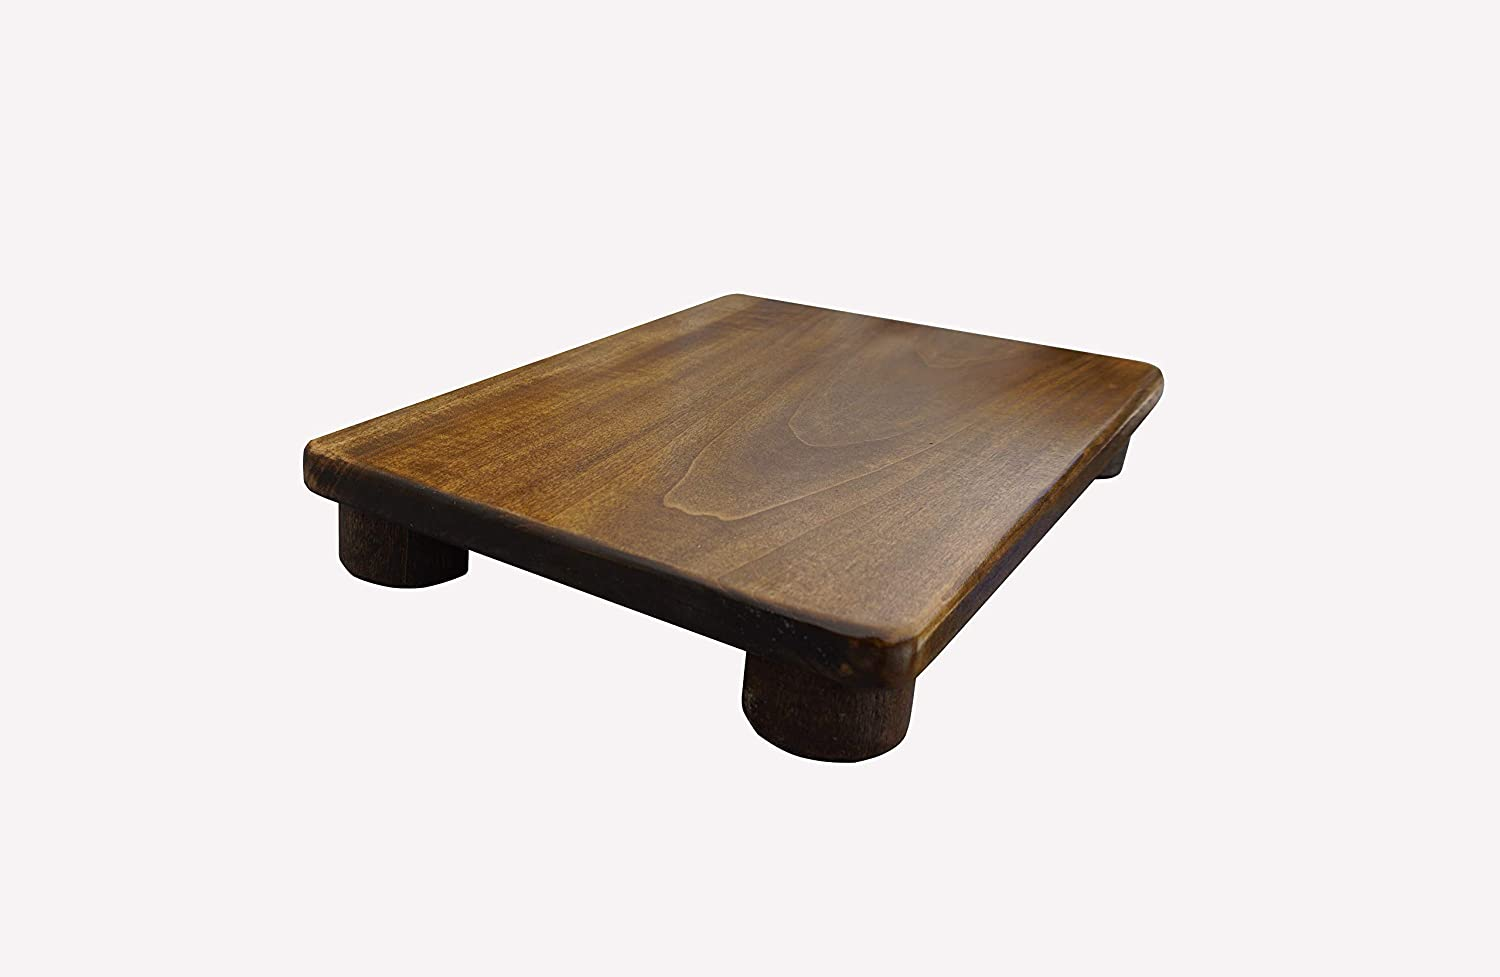 """KR Ideas Foot Stool, 2"""" Tall, Poplar, (Made in The USA) Unfinished"""